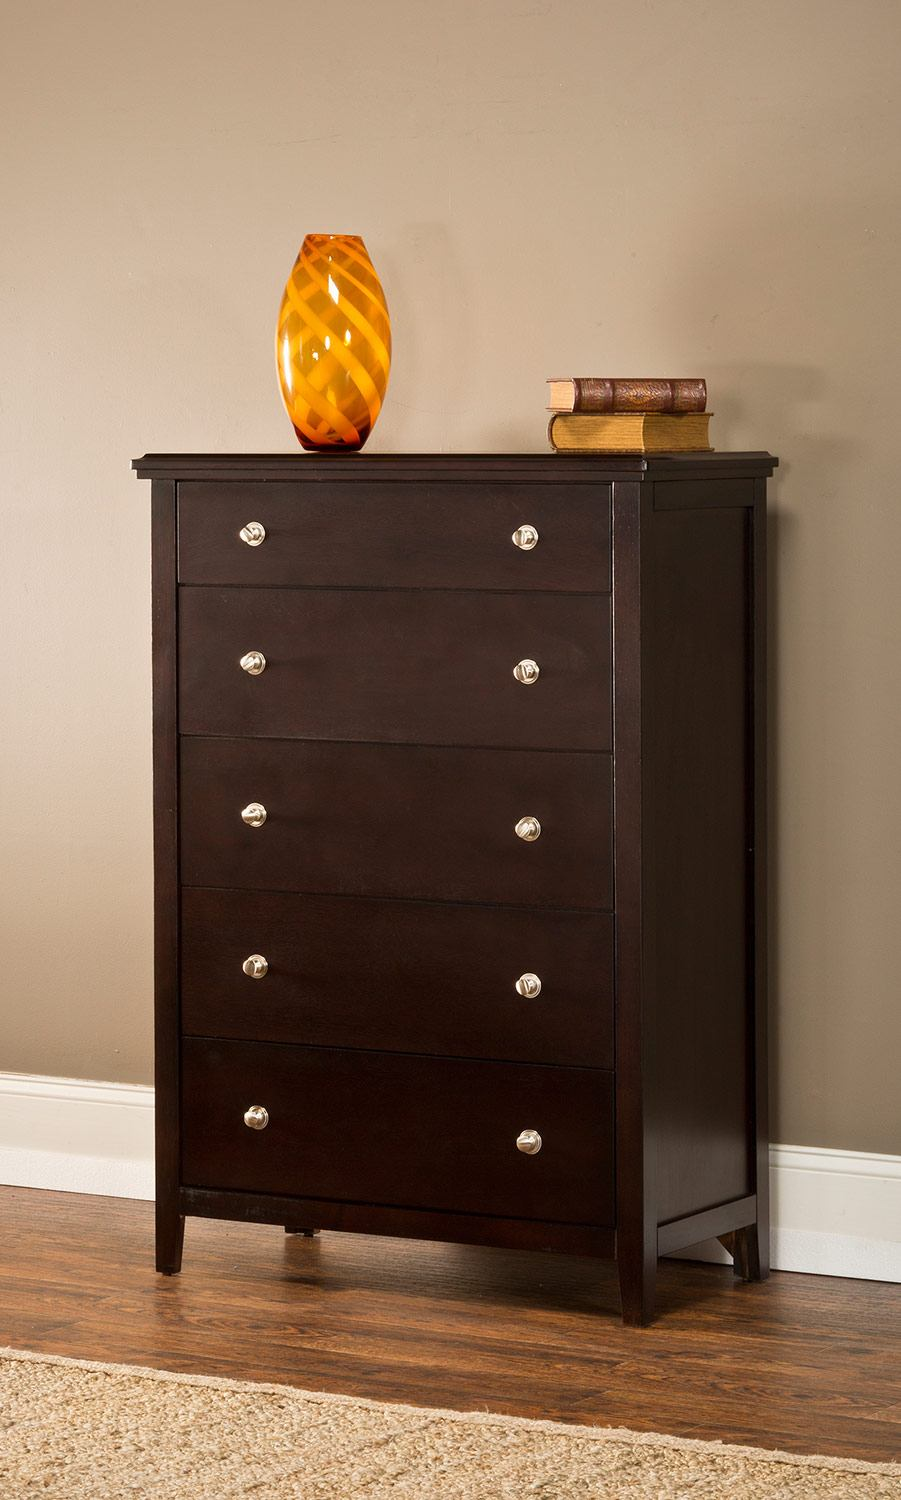 Hillsdale Metro Five Drawer Chest in Rich Espresso 1154-785